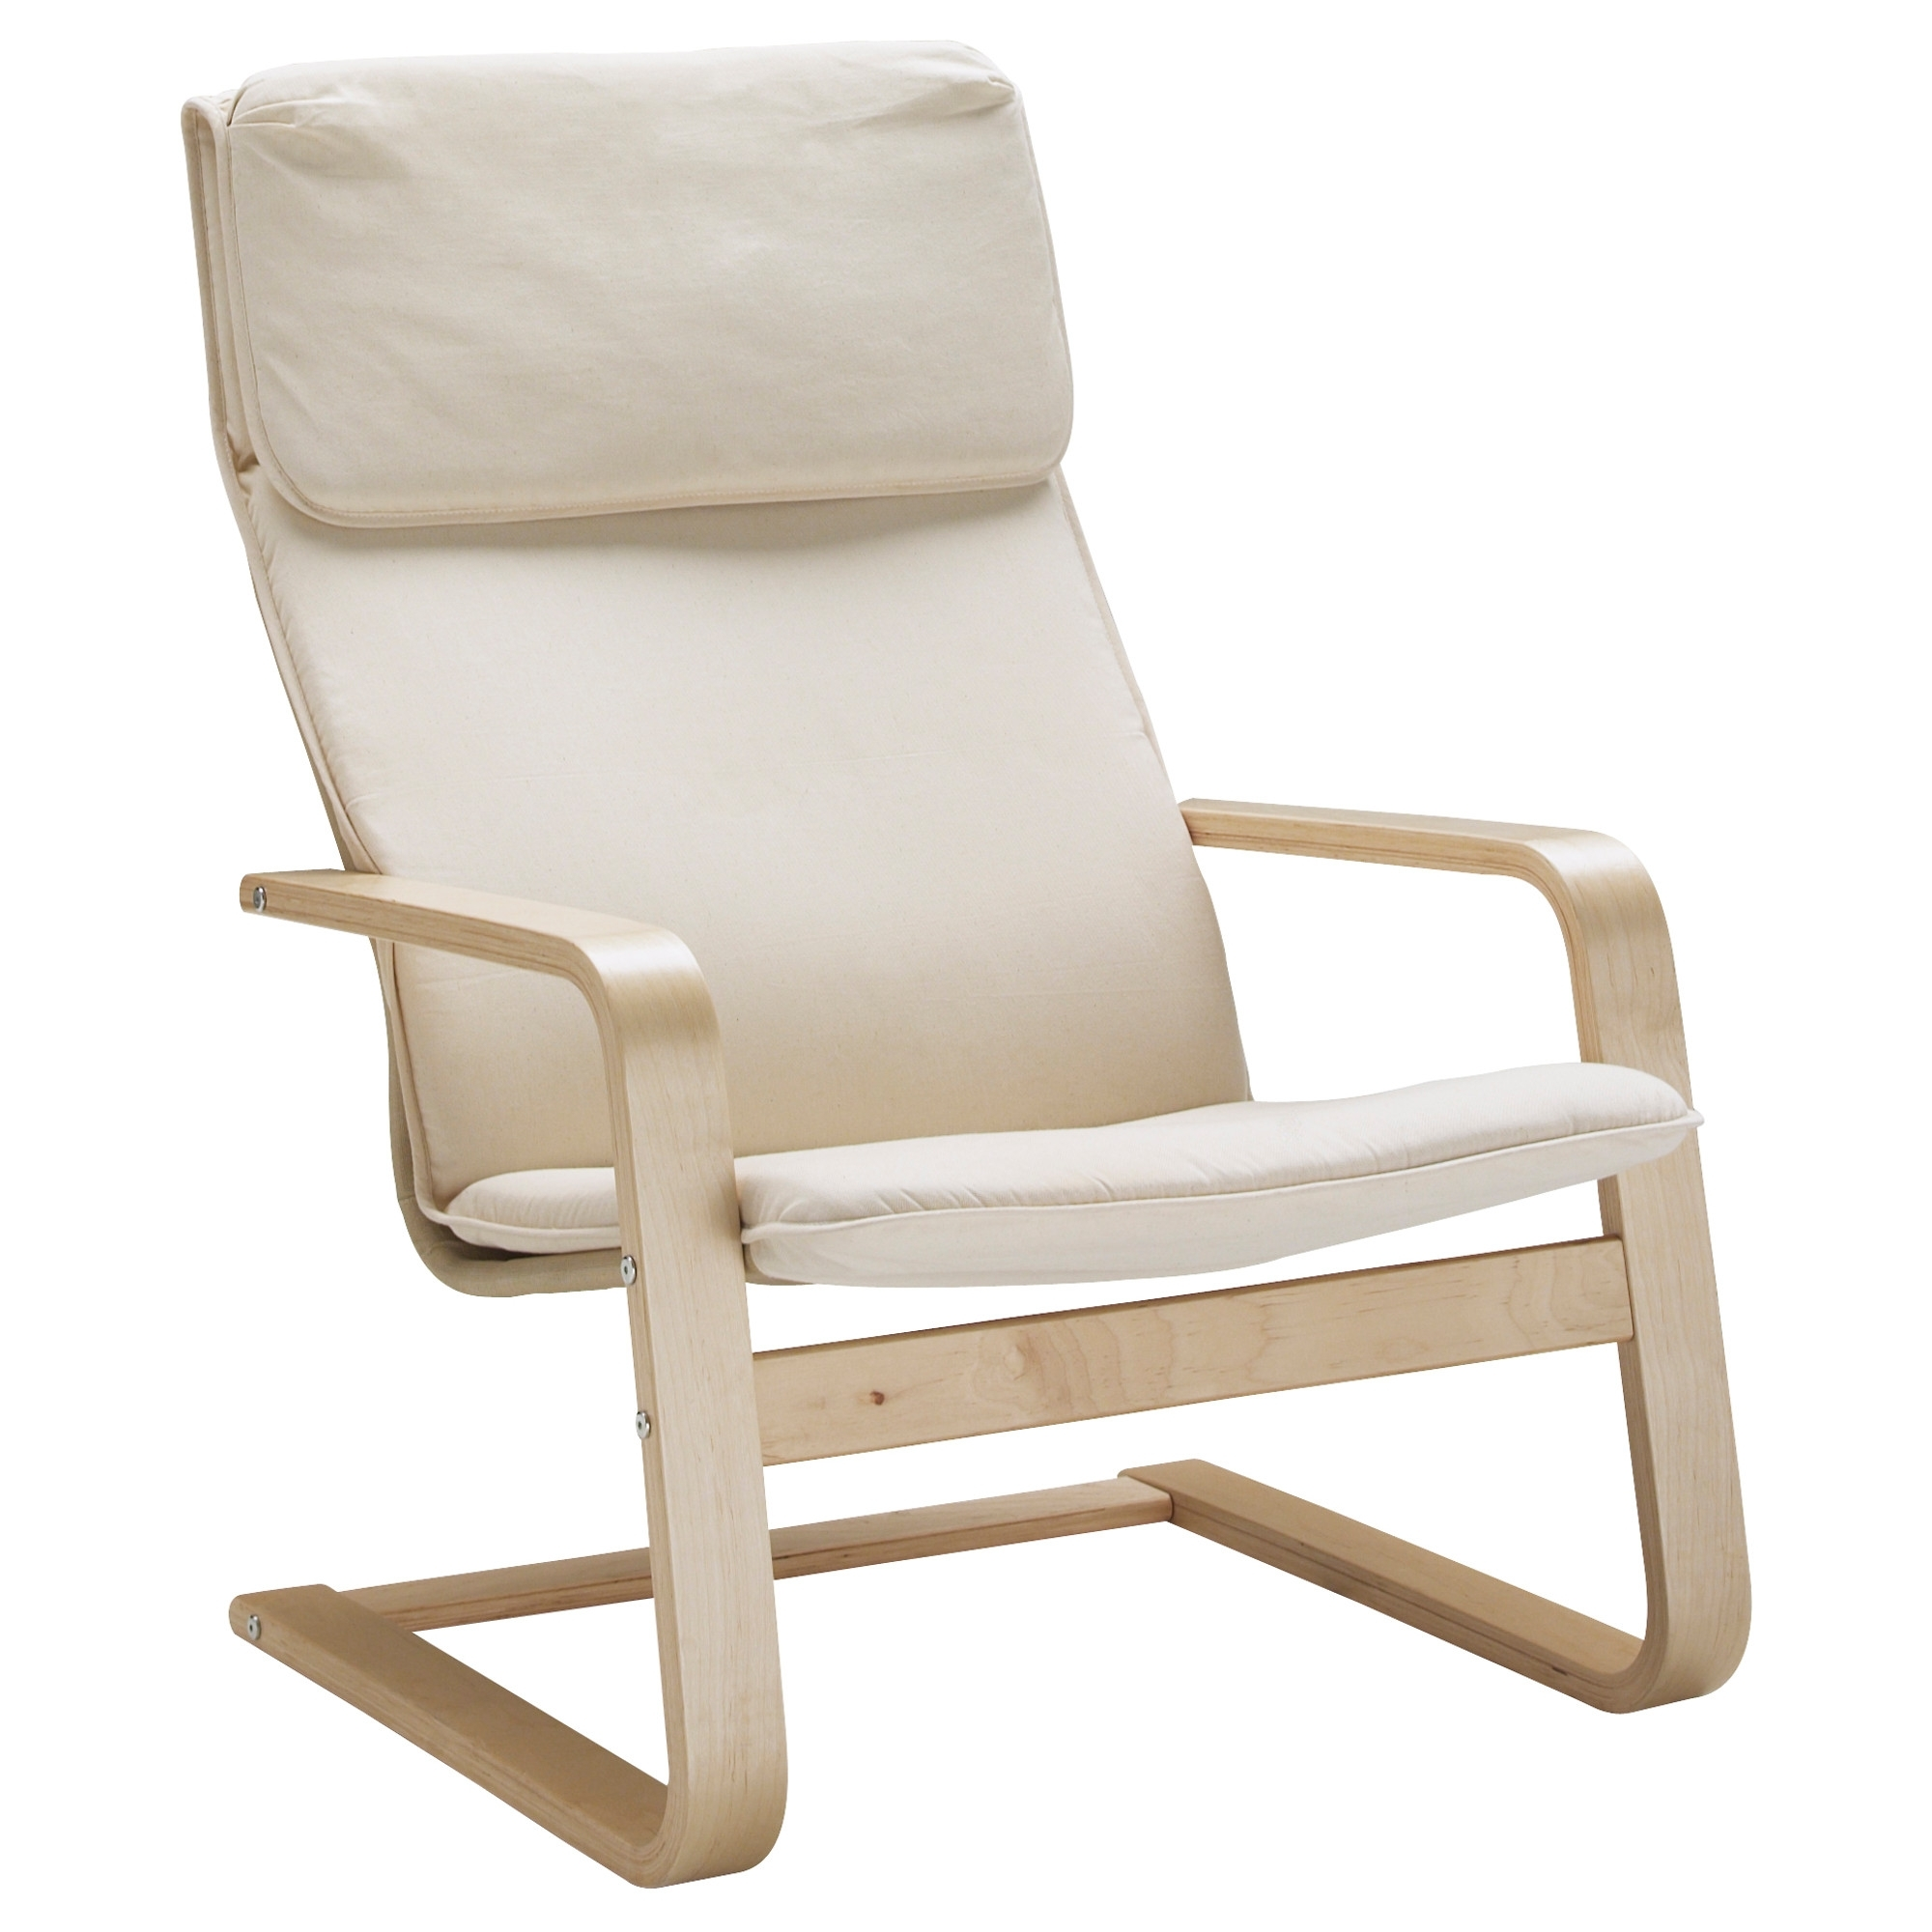 Ikea Outdoor Chaise Lounge Chairs Inside Recent Pello Armchair – Ikea (View 6 of 15)